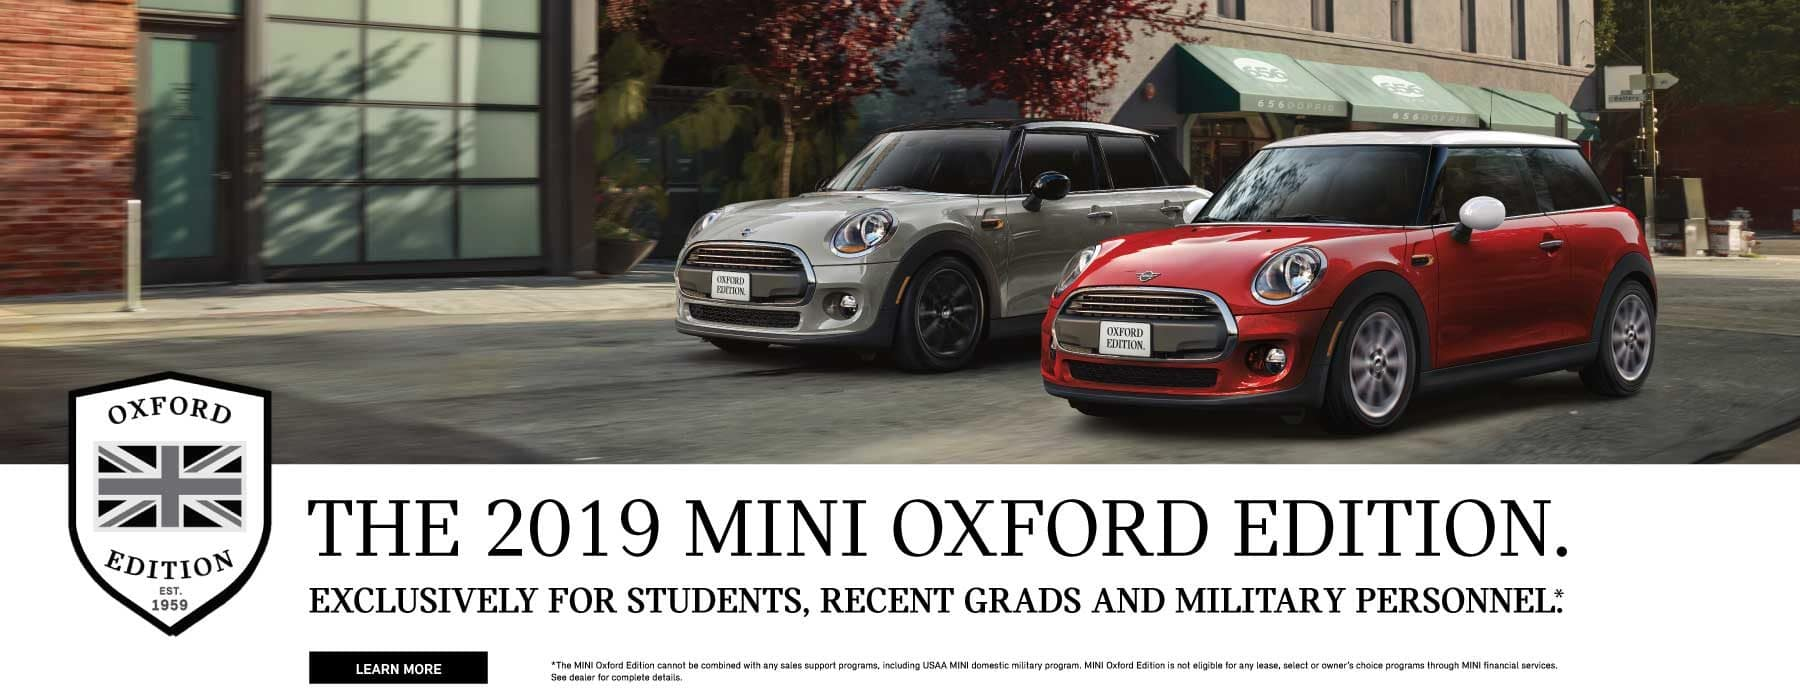 The 2019 MINI Oxford Edition. Exclusively for students, recent grads and military personnel. See East Bay MINI for complete details. Learn more button. MINI Cooper Hardtop 2 door and 4 door car driving on city street.